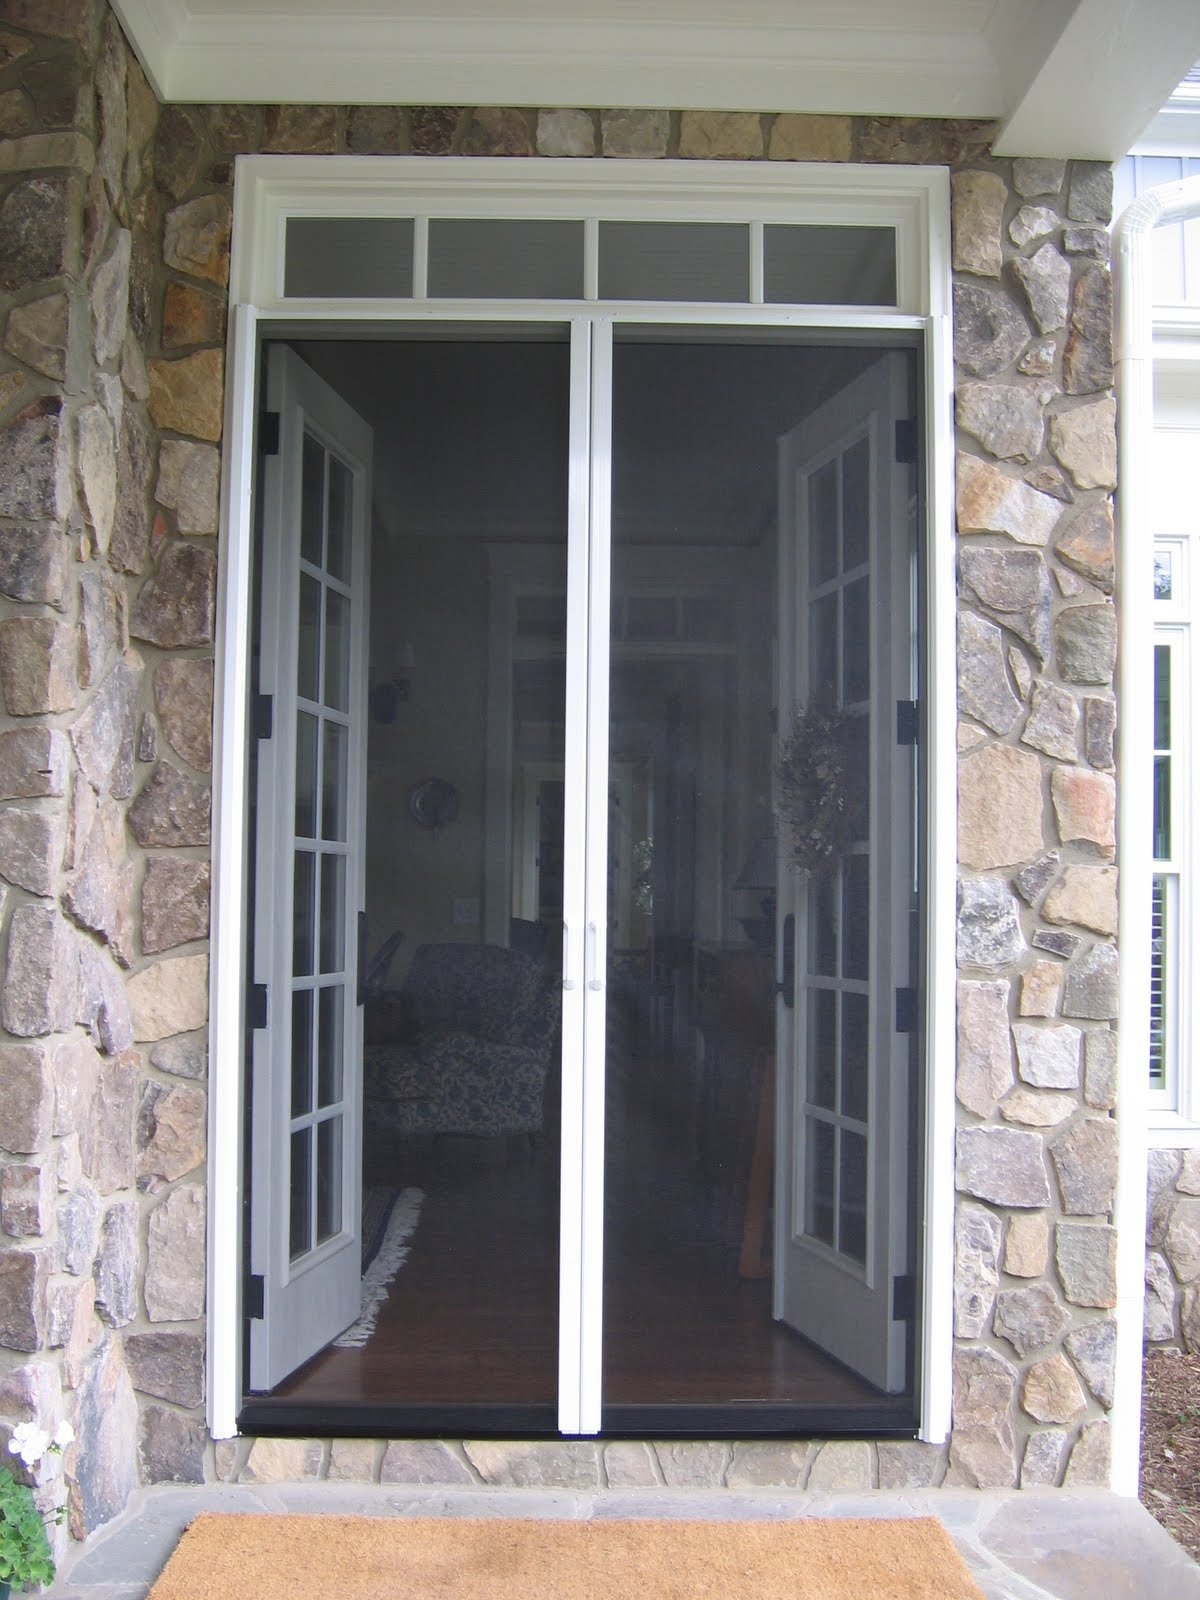 orange tan we of recent black installation installed out in housing that mesh stowaway county retractable a screens img desert door doors fiberglass this colored single with check los screen edited angeles and